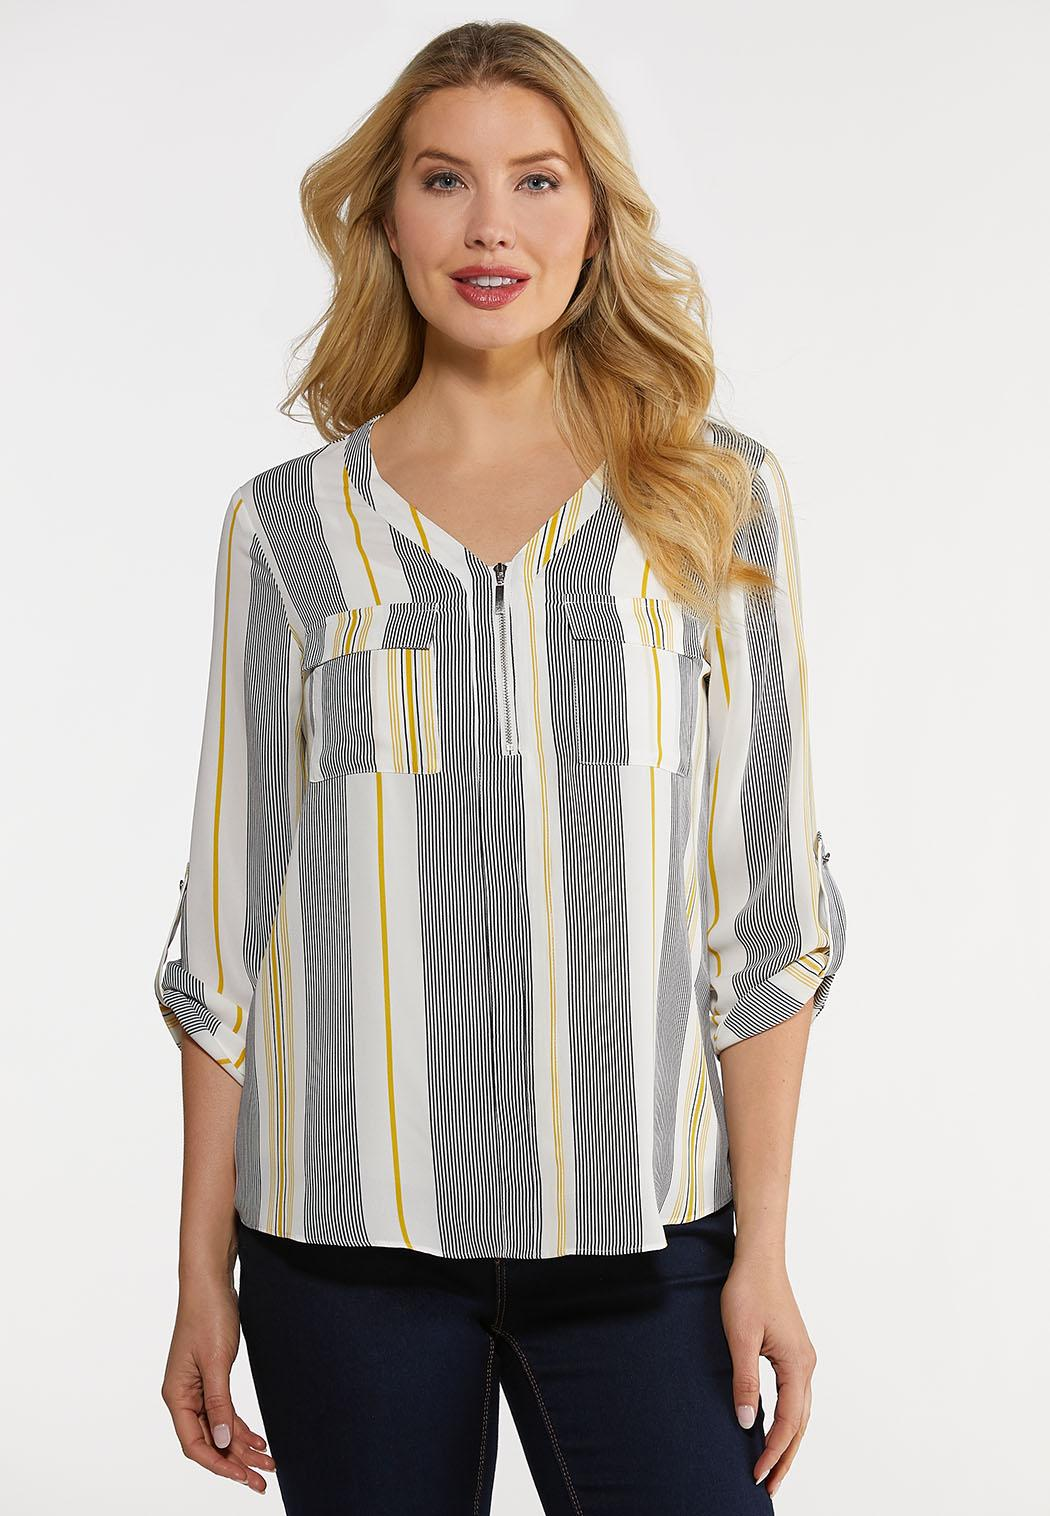 Striped Equipment Top